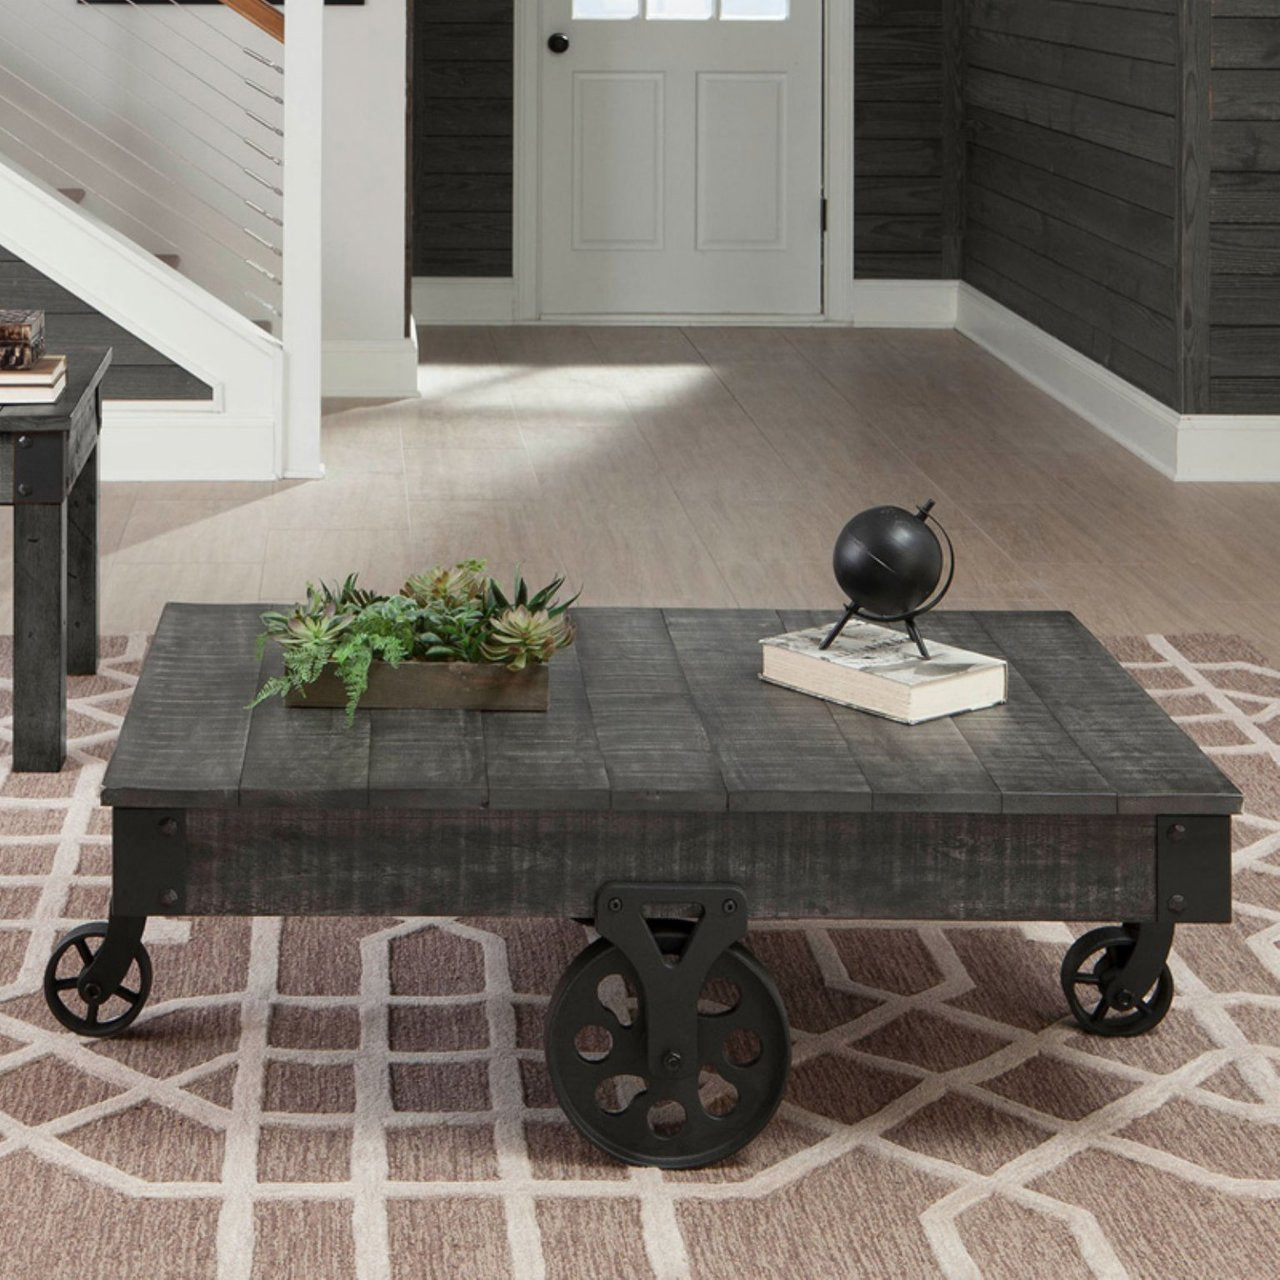 Distressed Gray Coffee Table.Rustic Distressed Gray Cocktail Table On Wheels